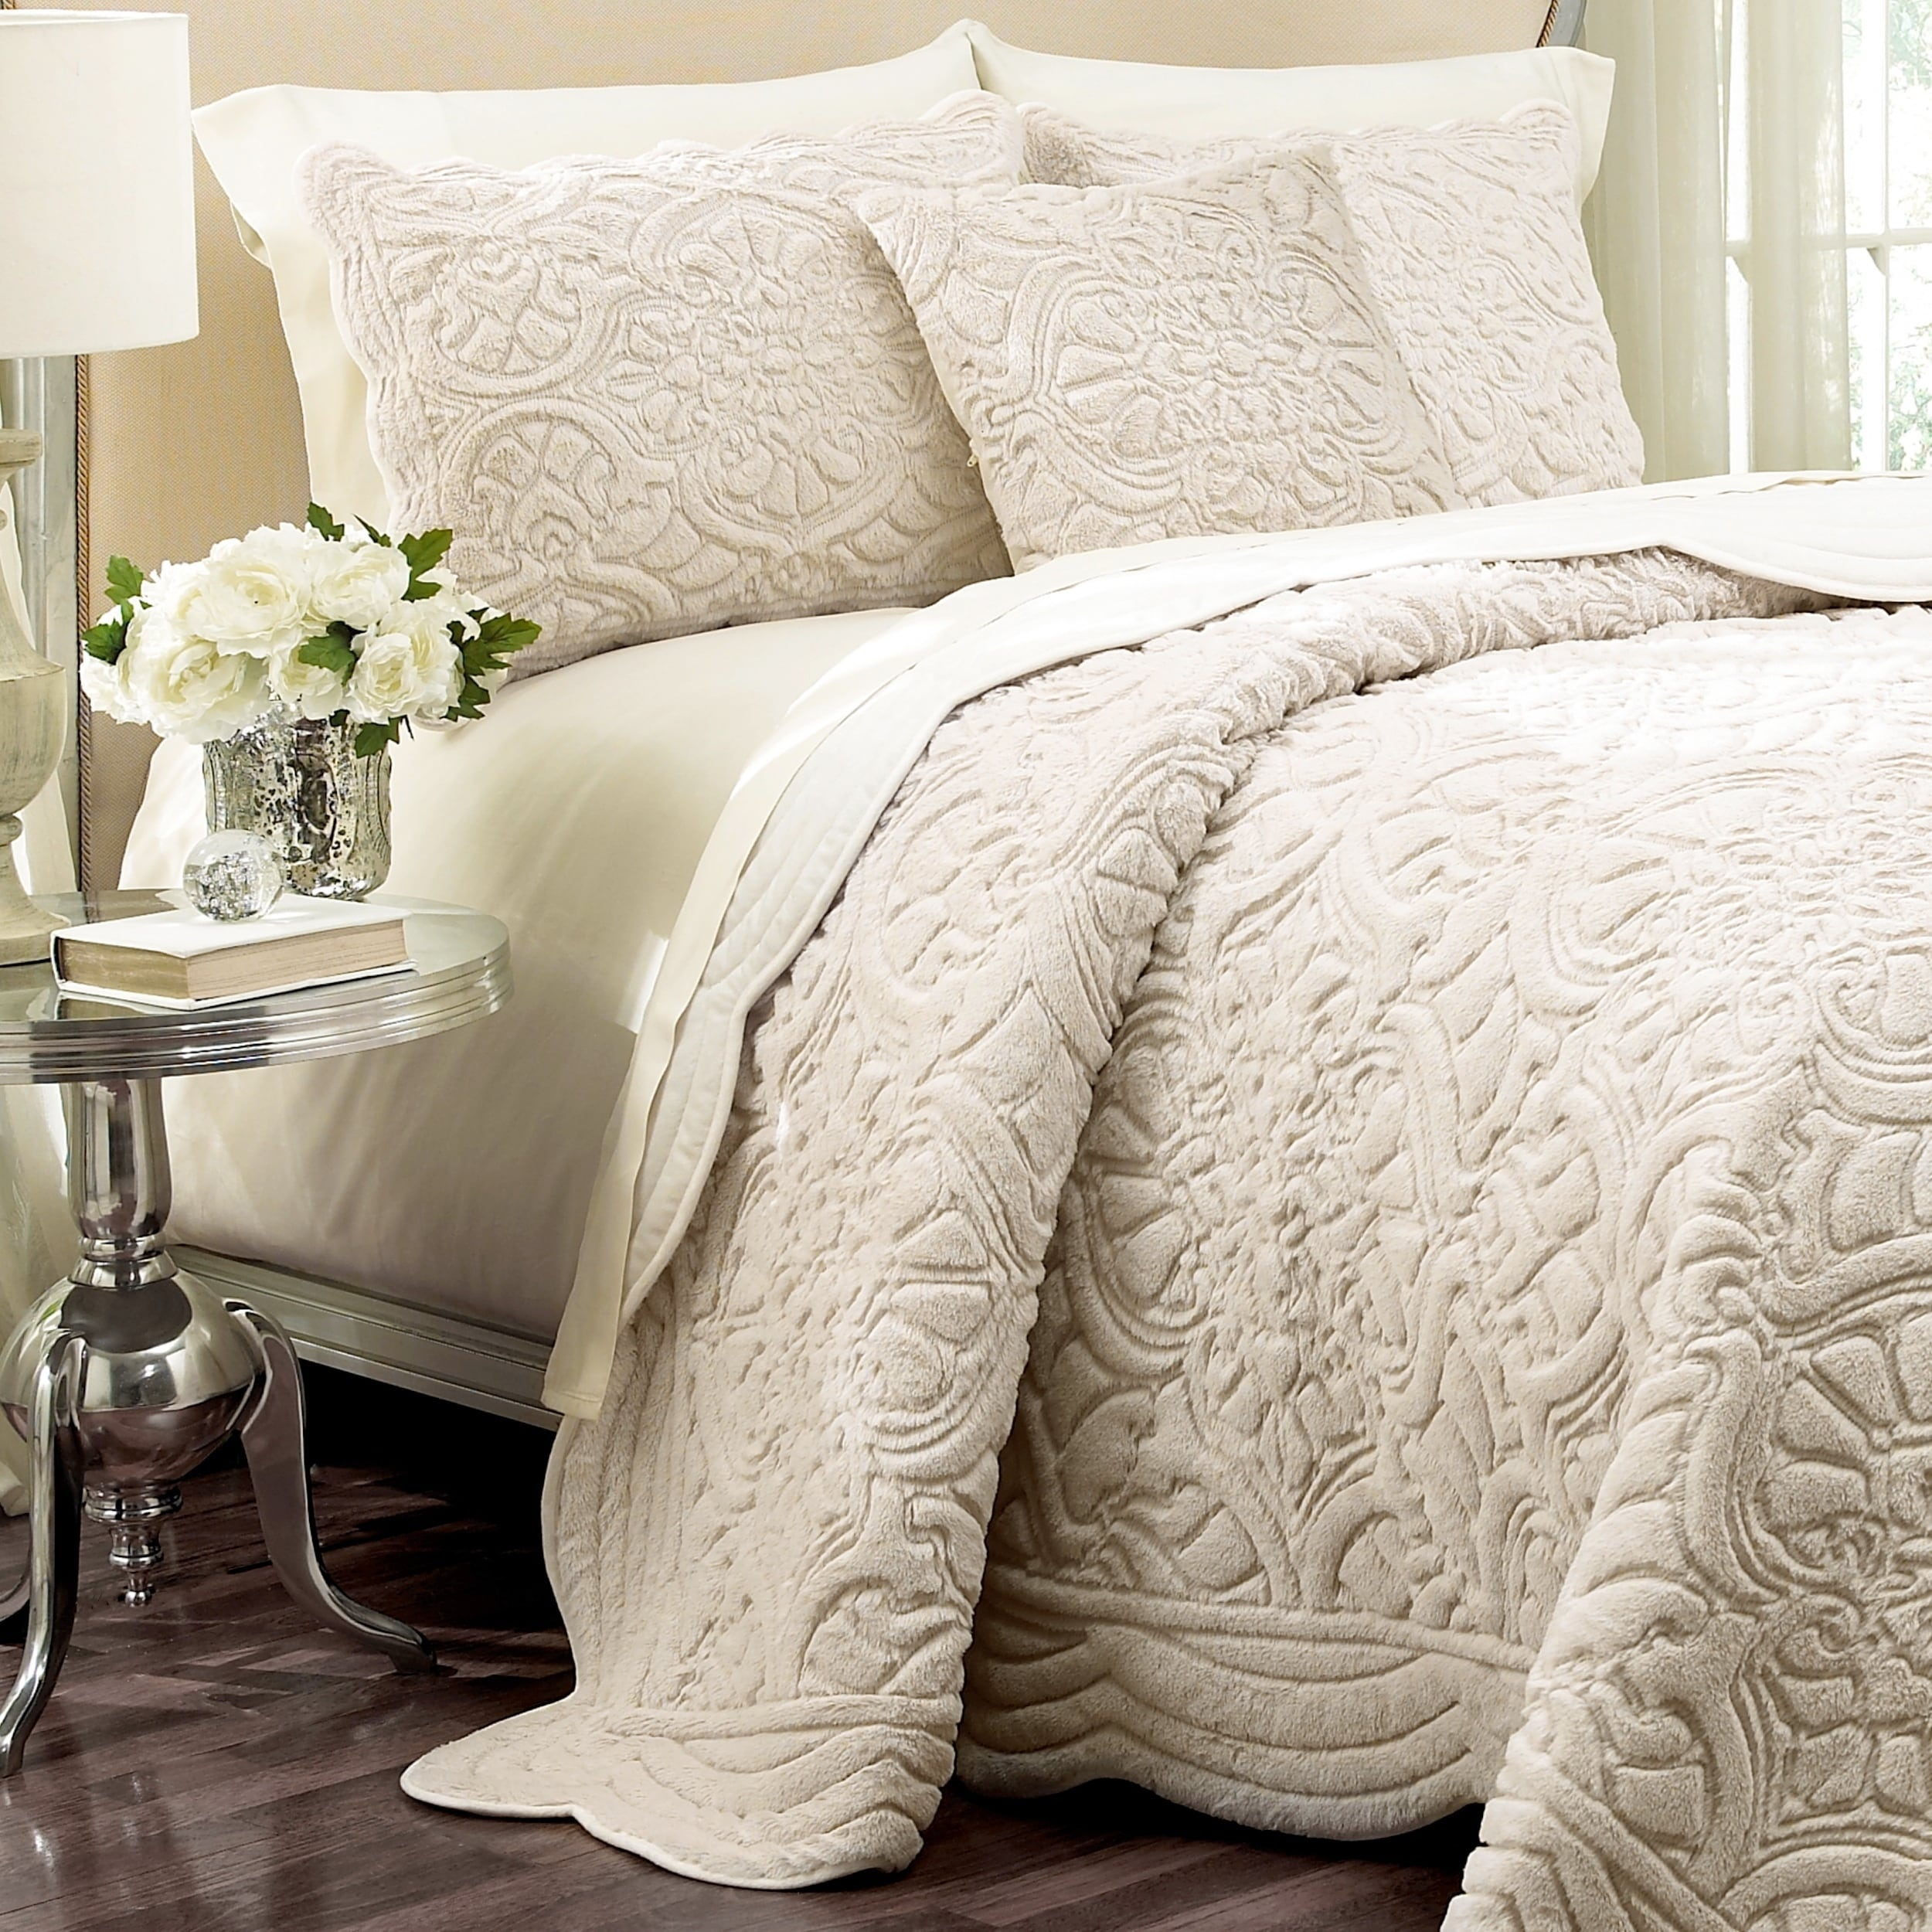 runner fullxfull scarf throws fur p faux shabby bedspread bed beddingluxury luxury ivory throw blanket cozy il chic coverlet decorative bedding